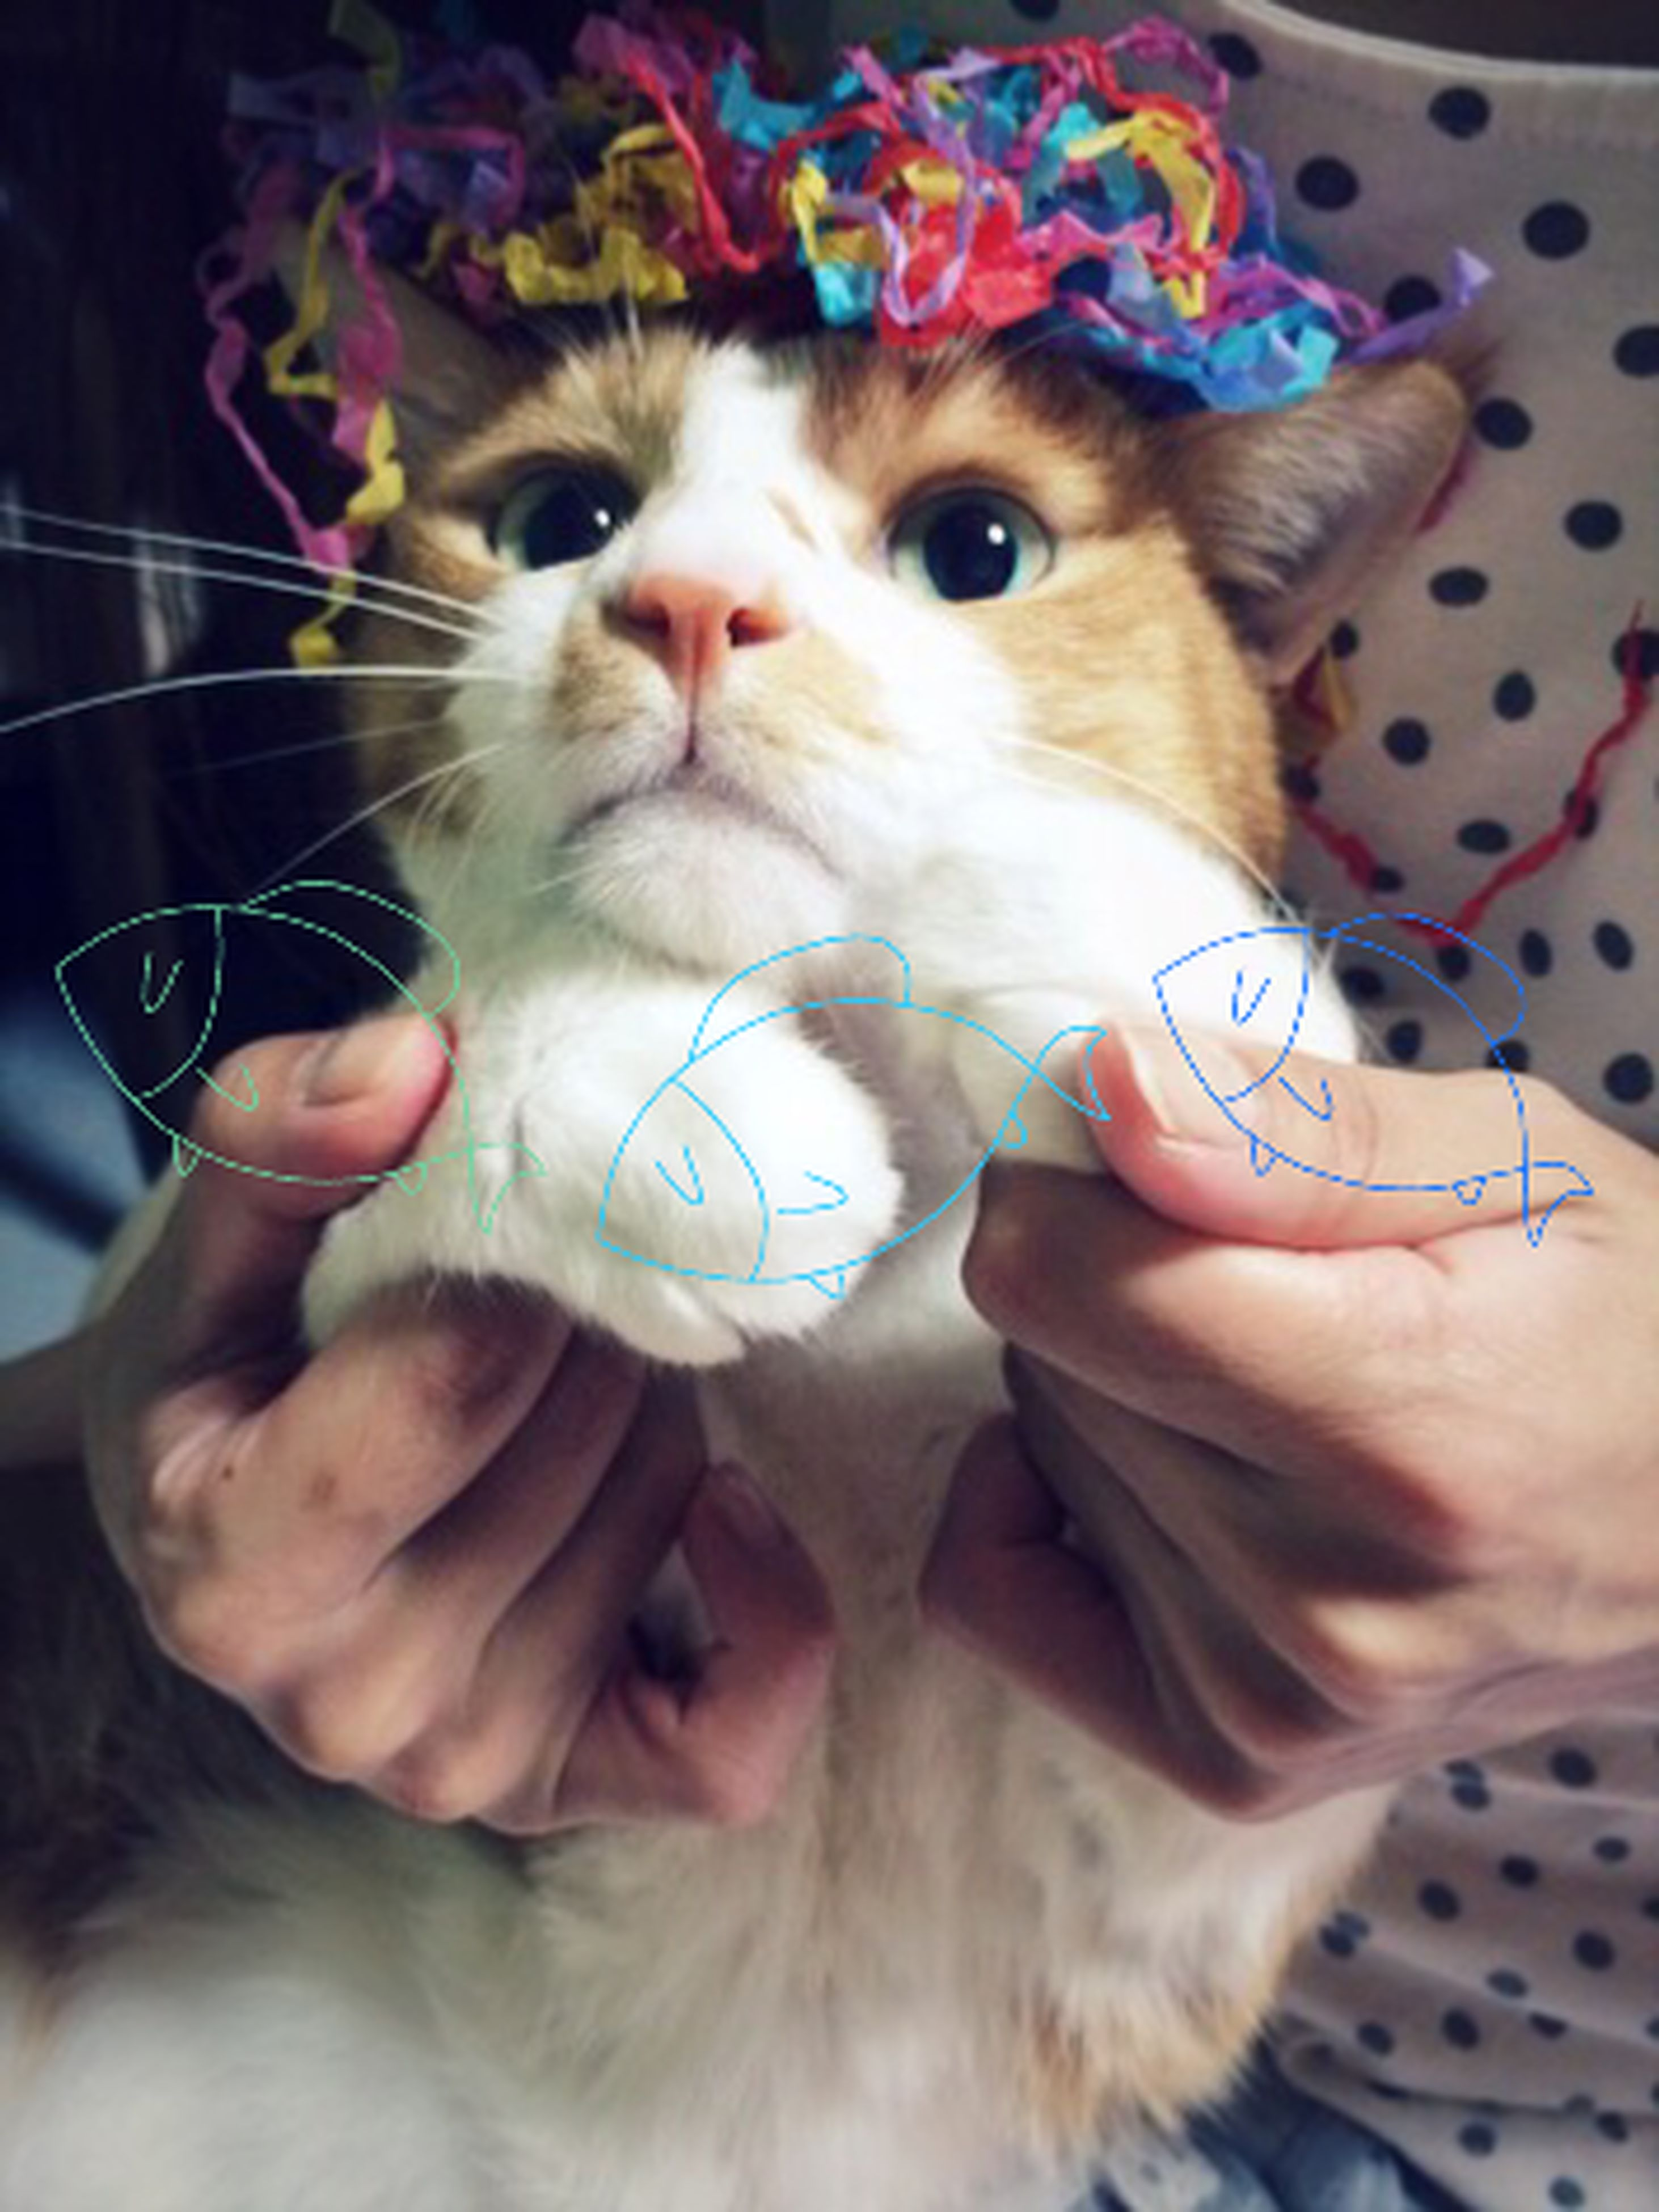 pets, indoors, person, domestic animals, animal themes, holding, domestic cat, one animal, mammal, cat, leisure activity, lifestyles, looking at camera, portrait, part of, close-up, human finger